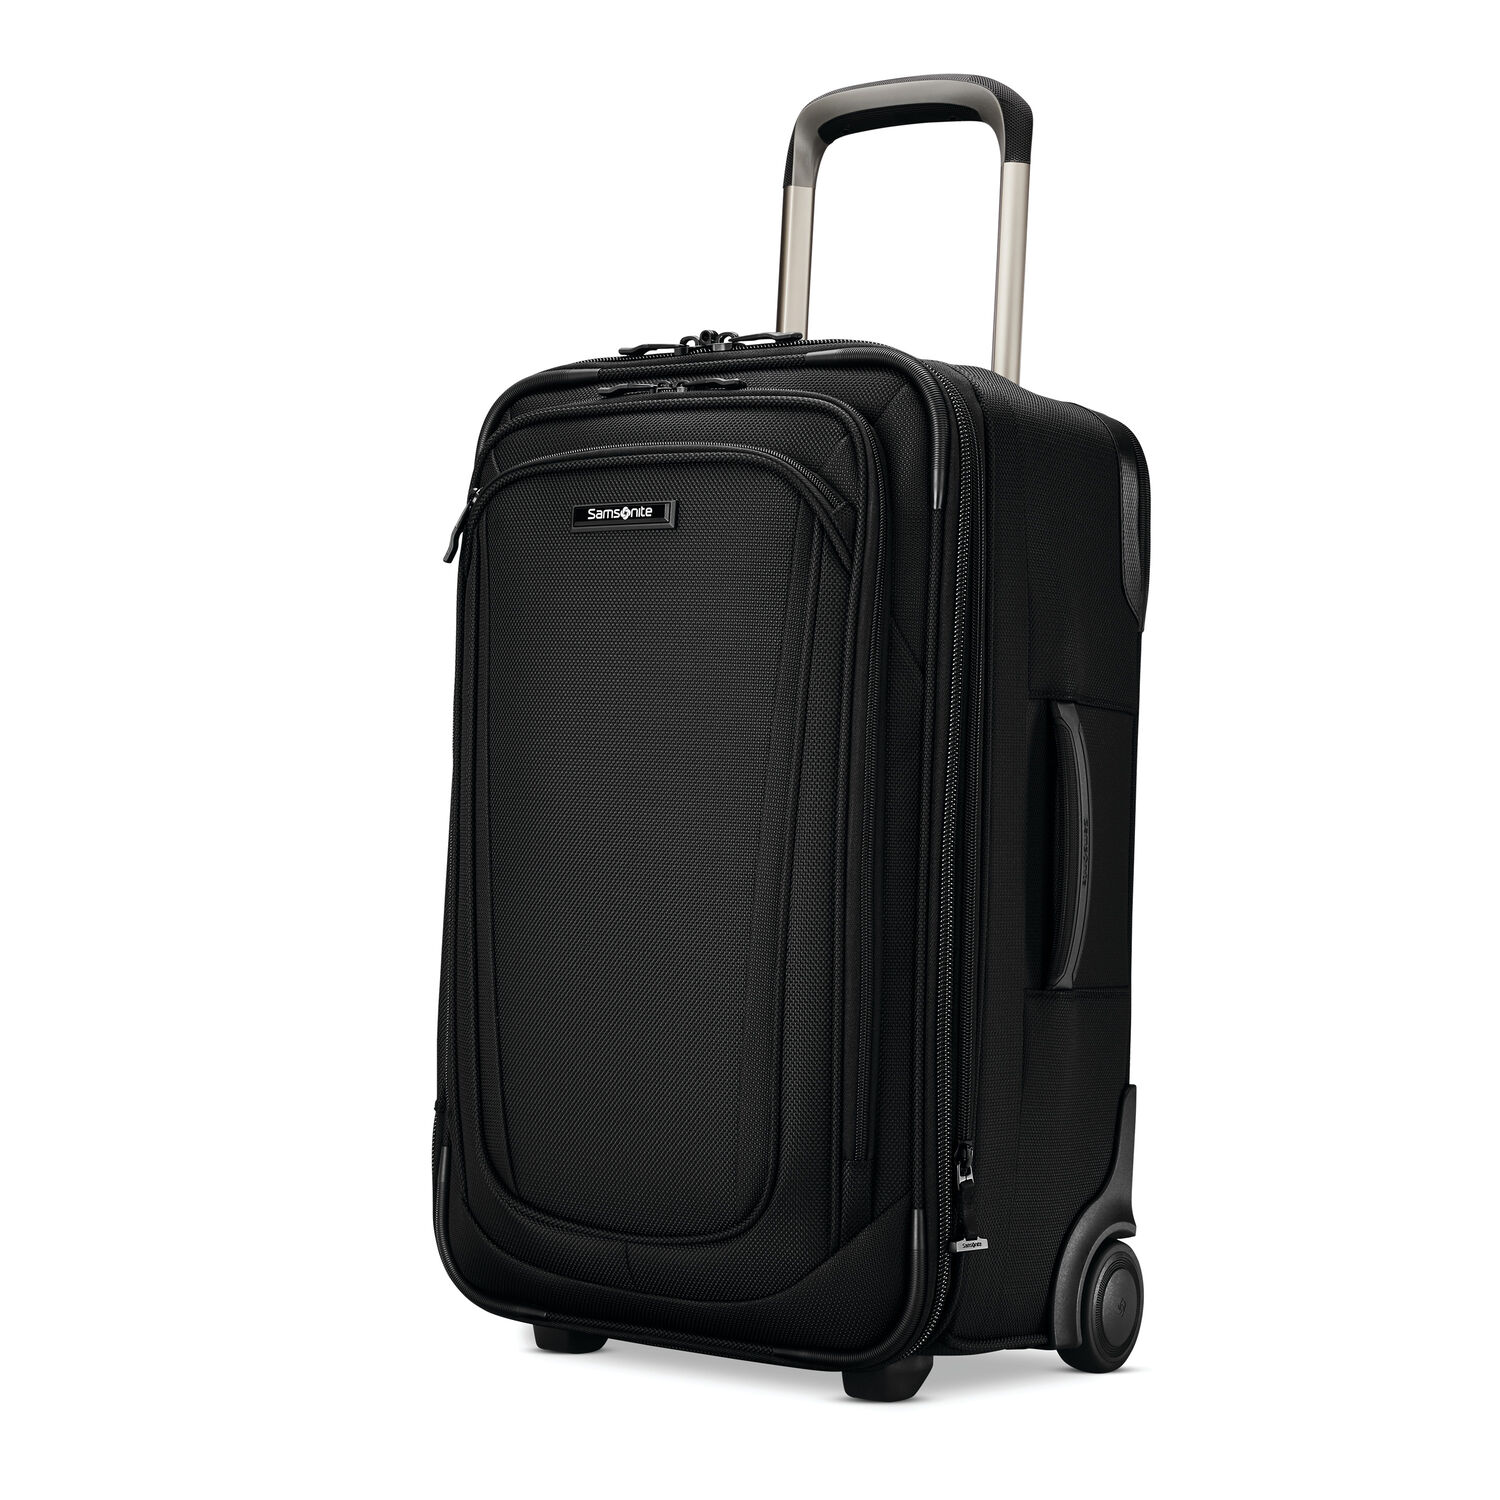 Samsonite Silhouette 16 Expandable Wheeled Carry-On in the color Obsidian Black.